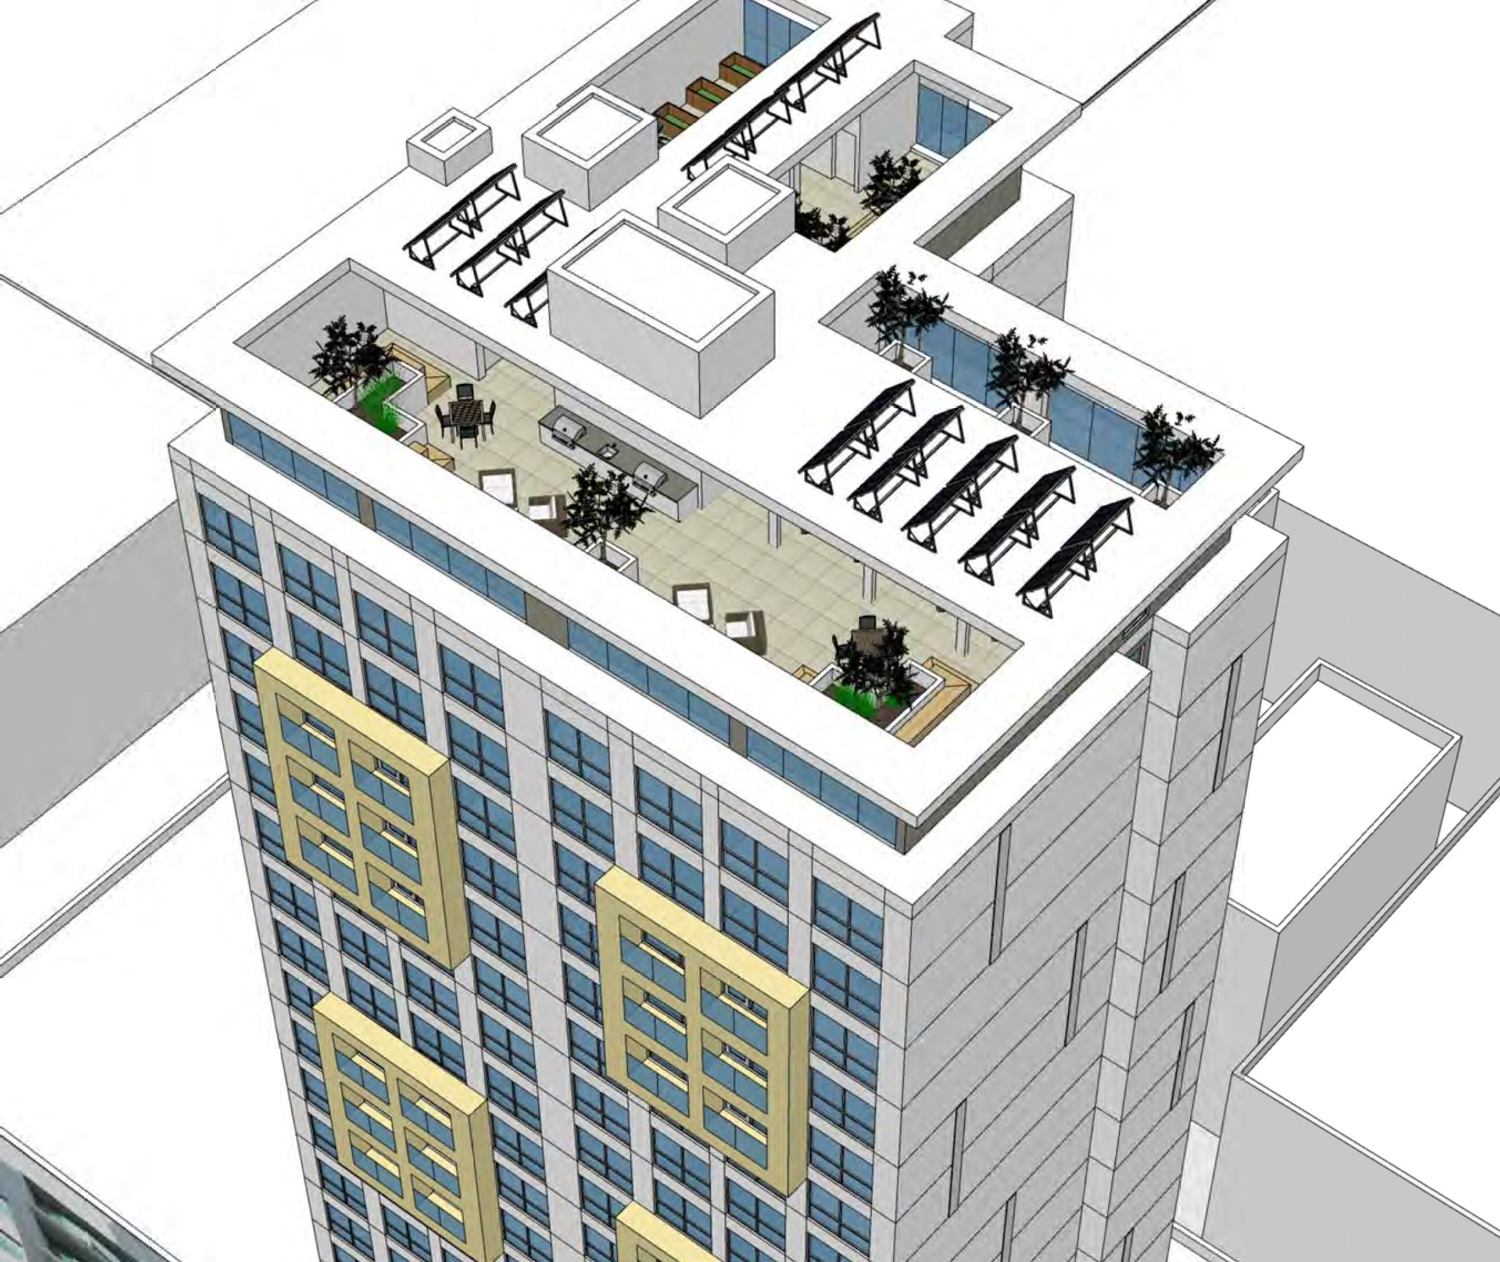 17 East Santa Clara Street rooftop view, rendering by Anderson Architects